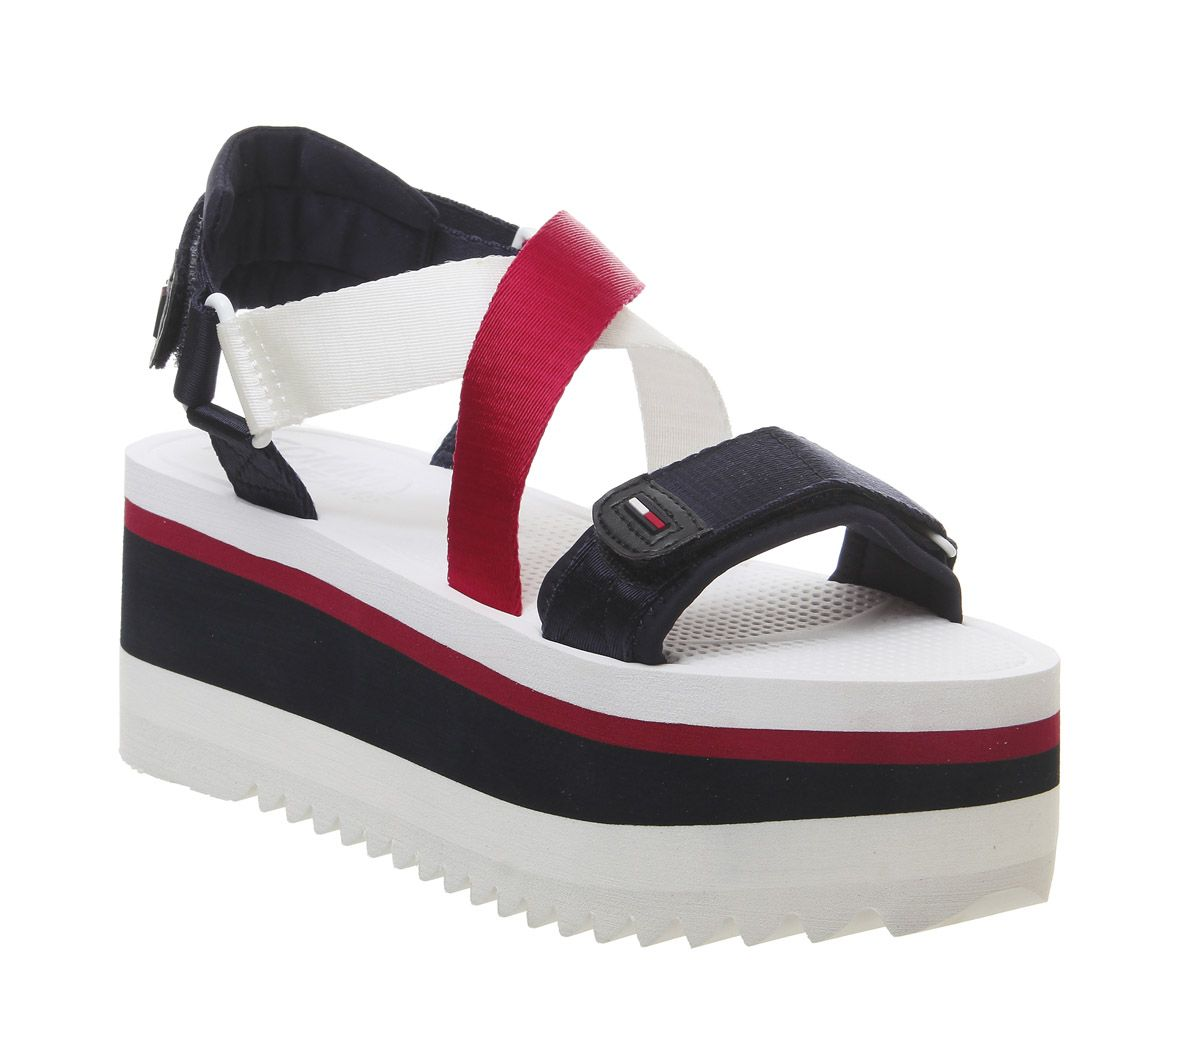 b03a1a103 Tommy Hilfiger Colette Sandals Red White Blue F - Sandals